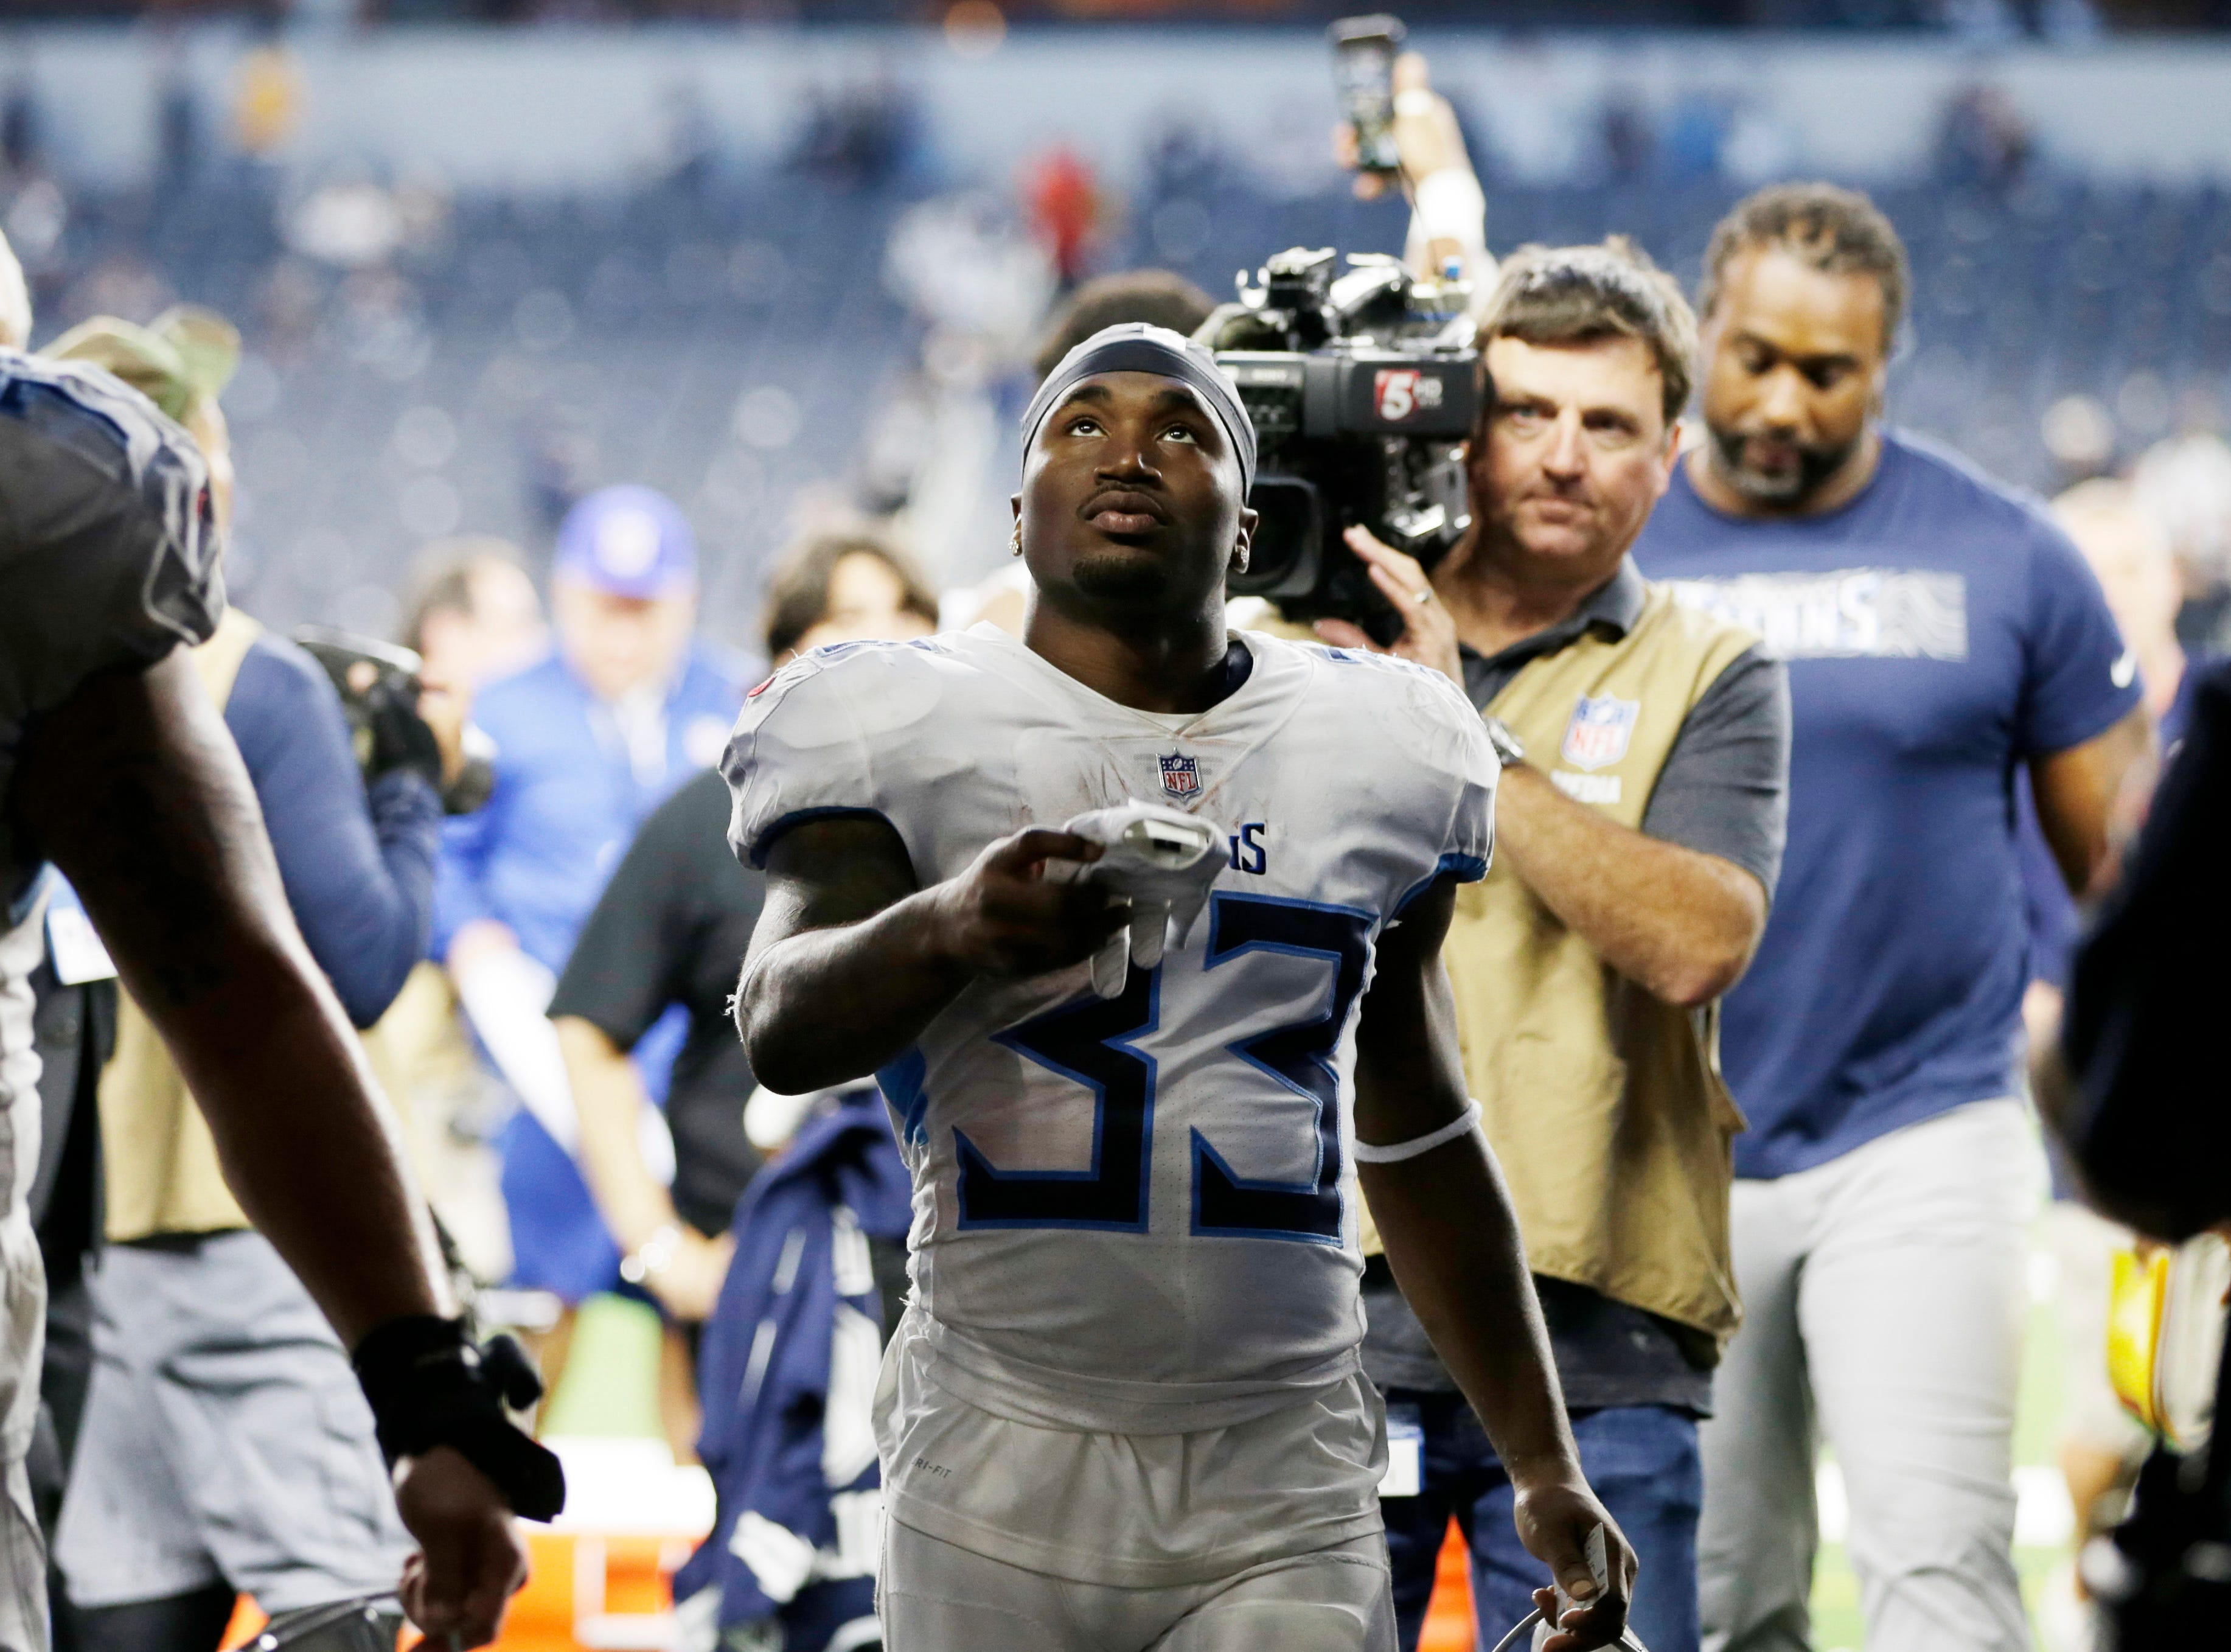 Tennessee Titans running back Dion Lewis (33) walks off the field after the game against the Dallas Cowboys at AT&T Stadium. Mandatory Credit: Tim Heitman-USA TODAY Sports